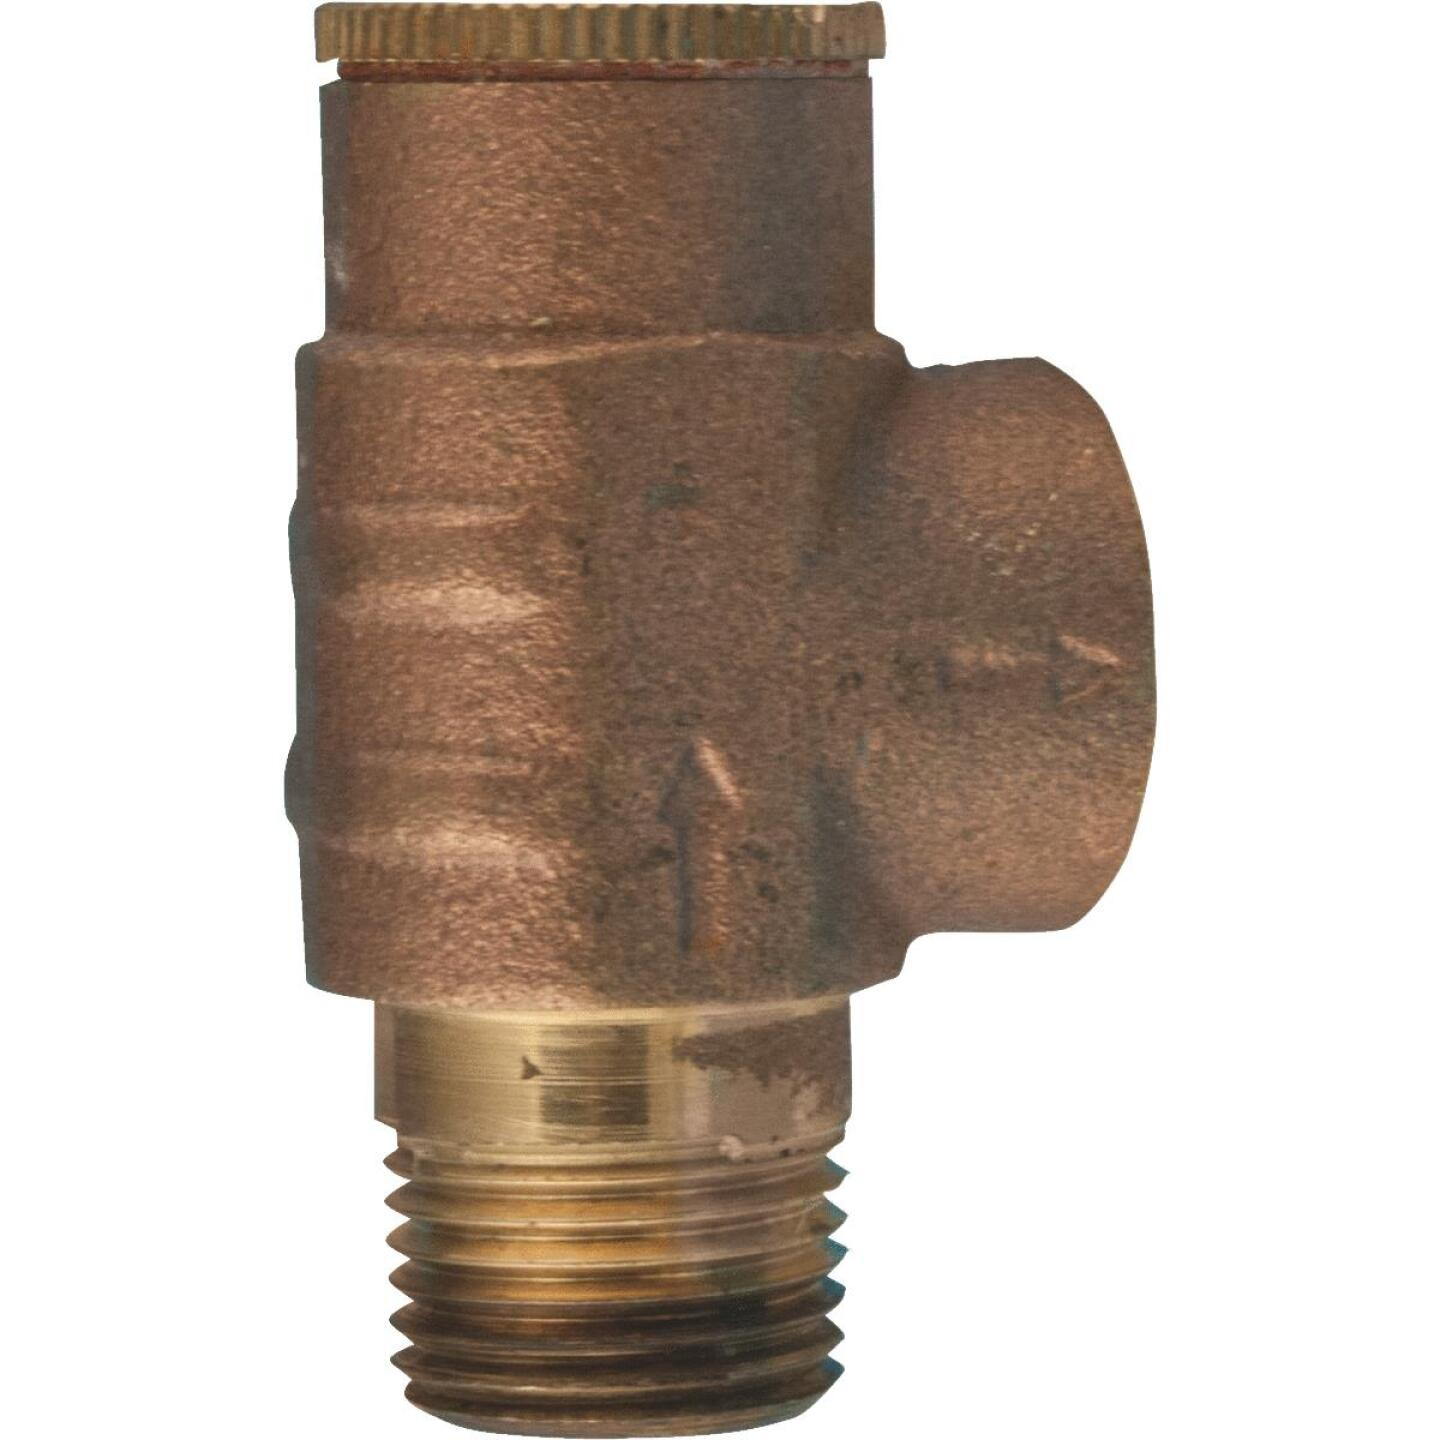 Star Water Systems 1/2 In. 70 PSI Pressure Relief Valve Image 1